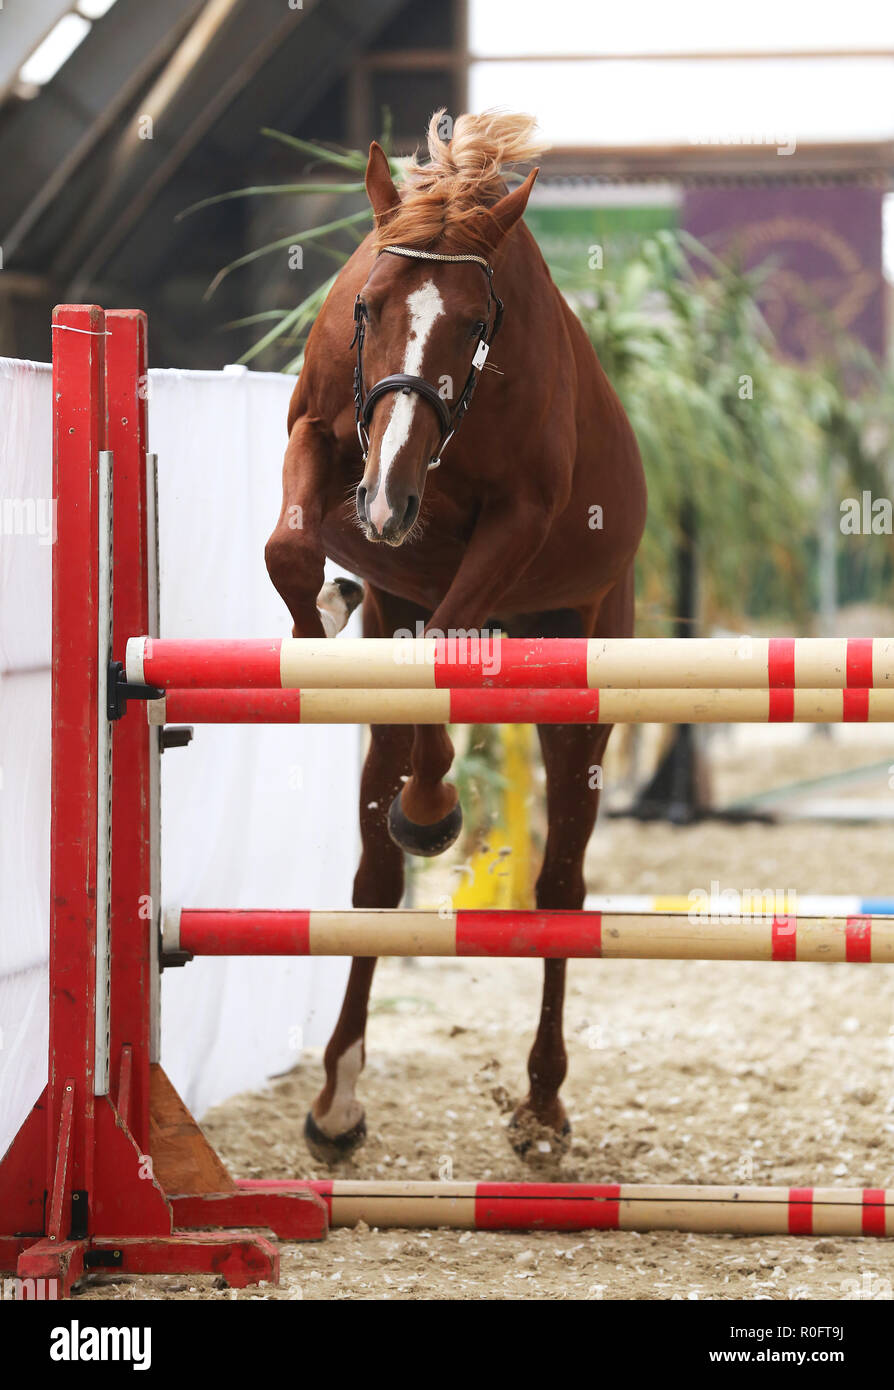 Free Jumping Horse High Resolution Stock Photography And Images Alamy